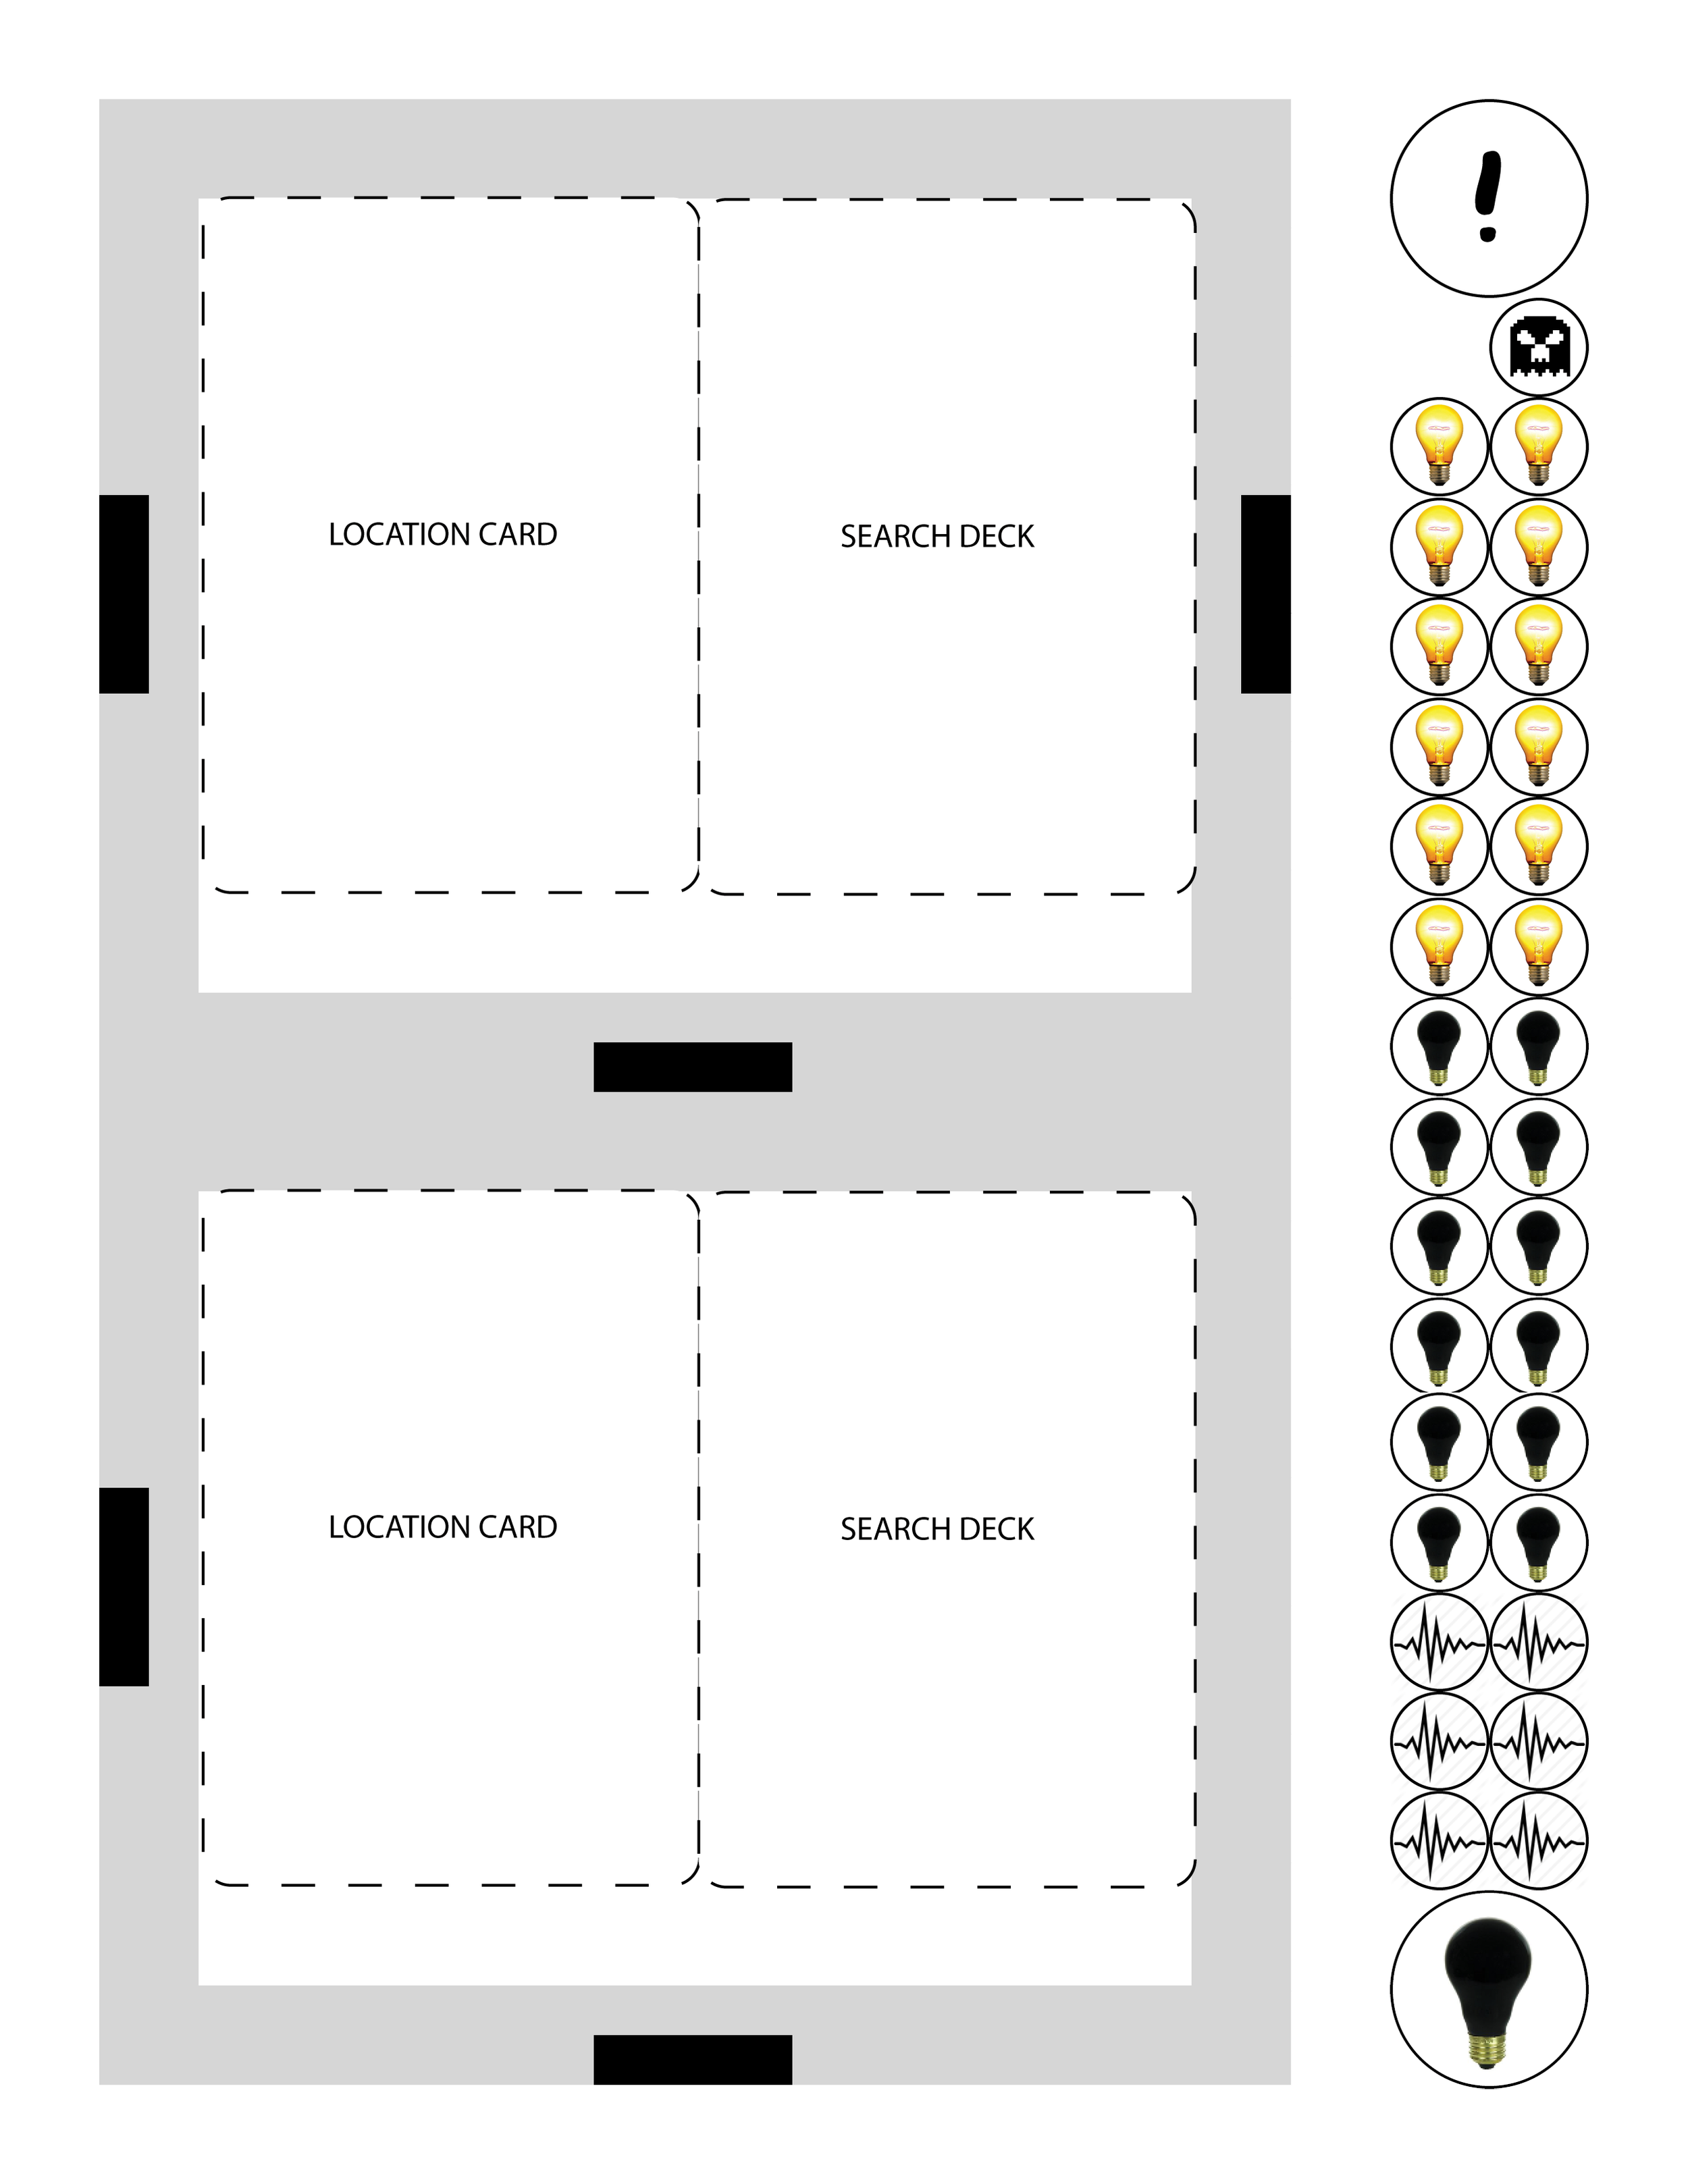 A page from the Grave Error PnP, featuring house layout cards and light icons.